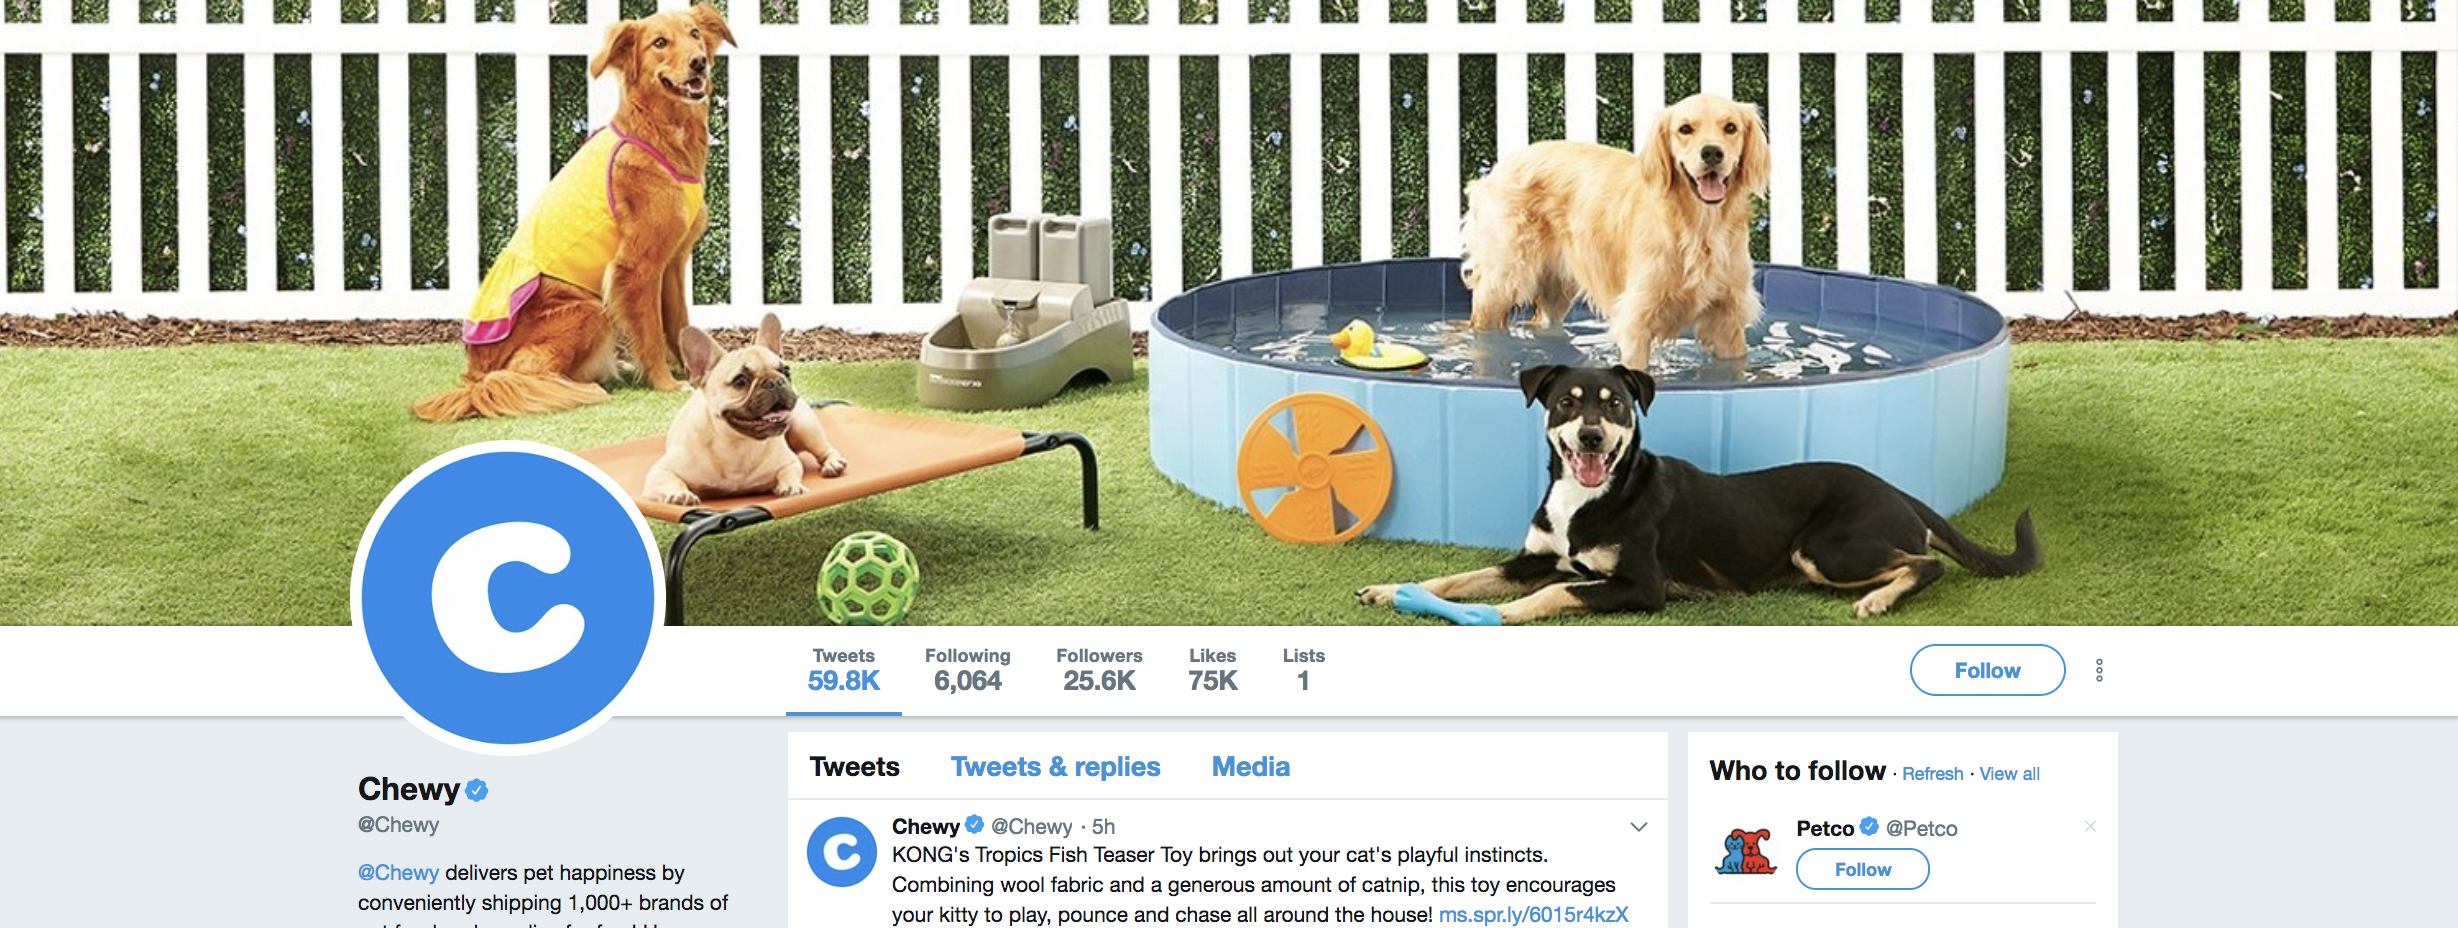 twitter-header-with-pets